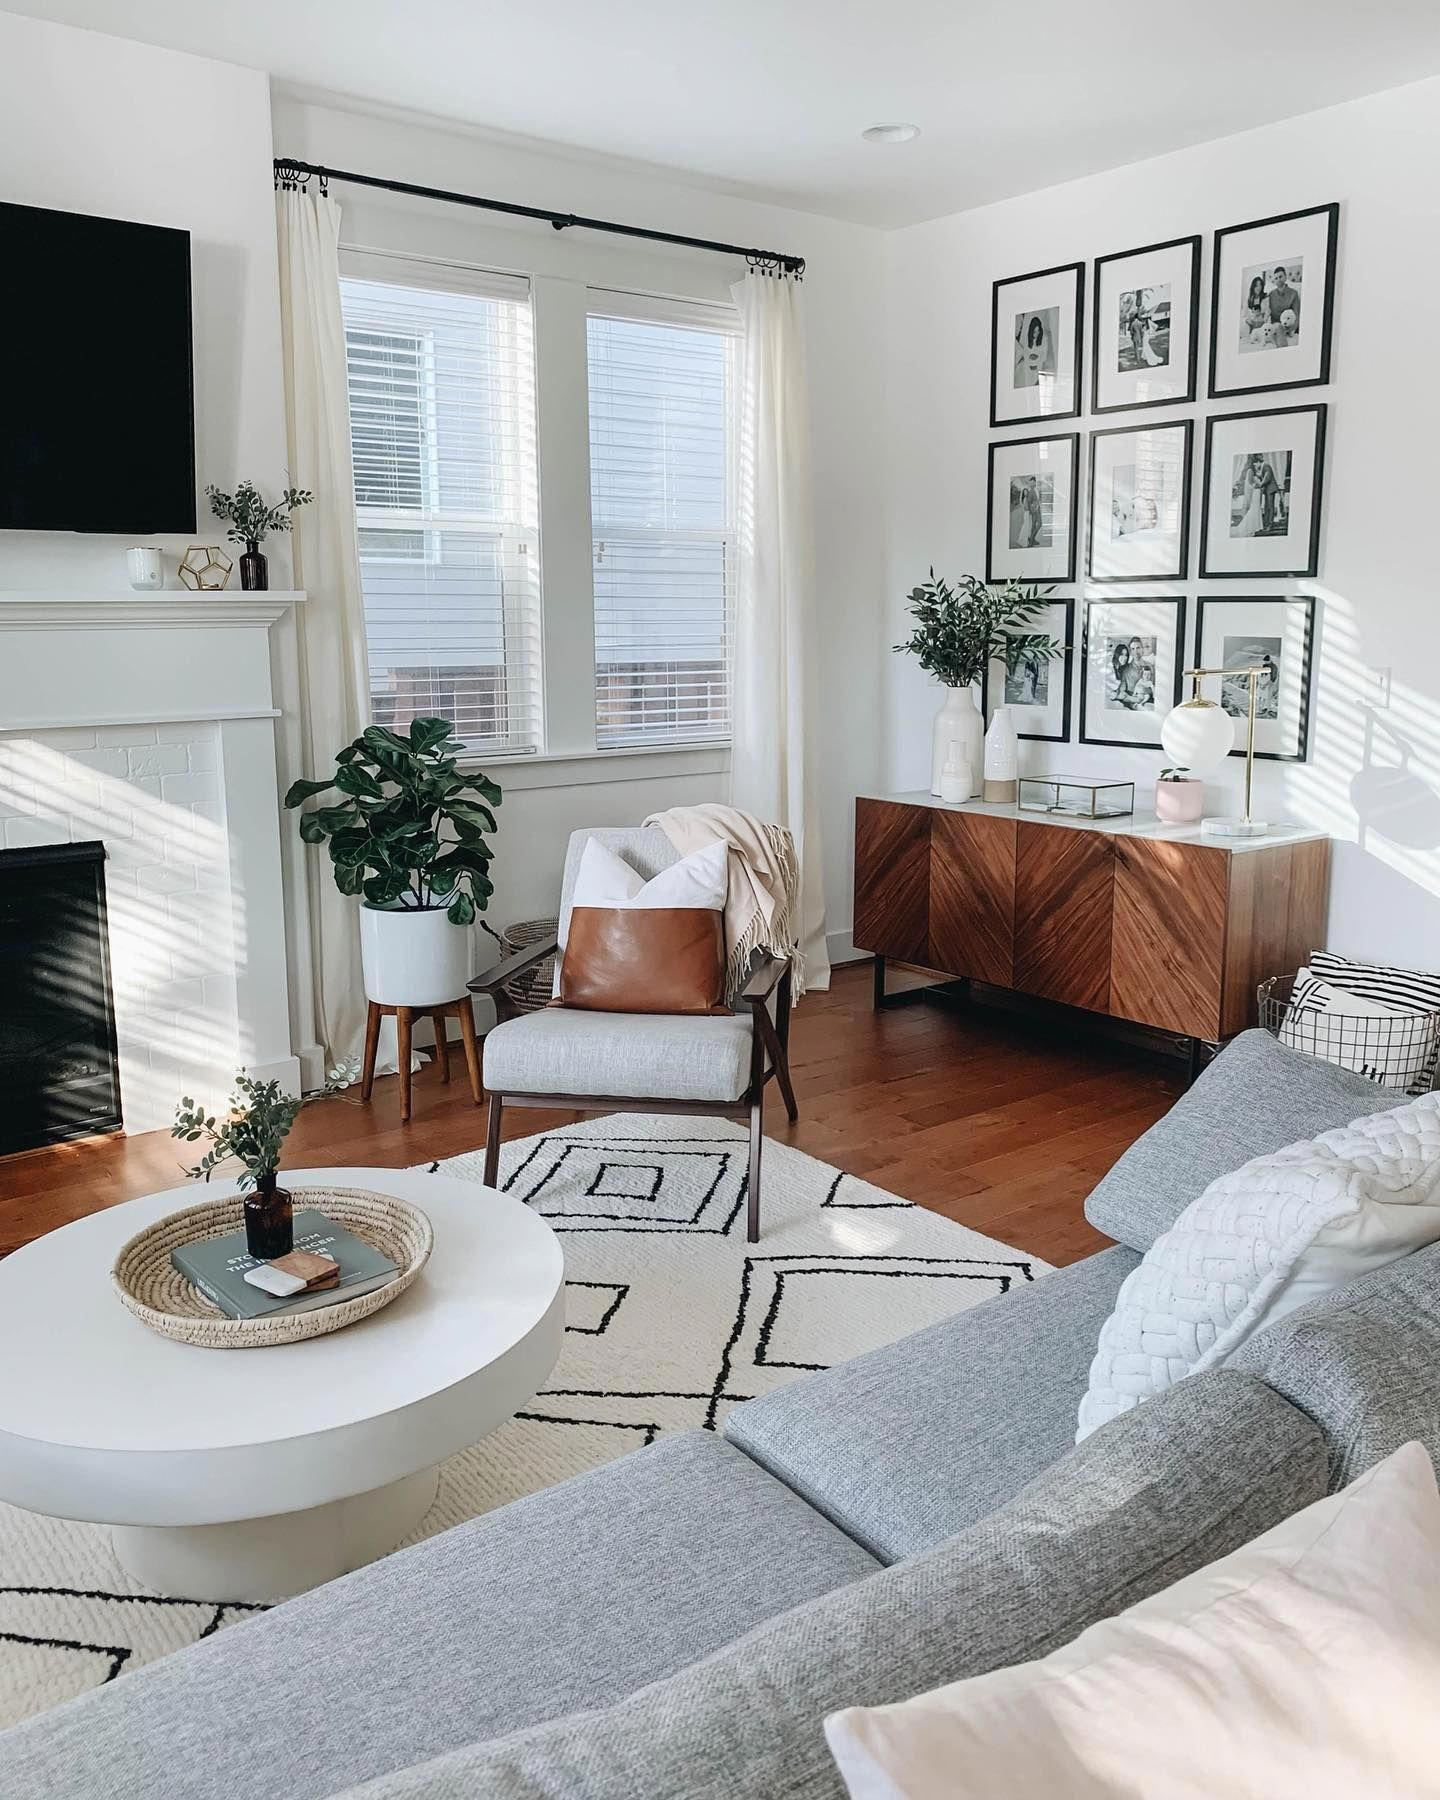 6 Tips For A Welcoming Living Room In 2020 Apartment Decor